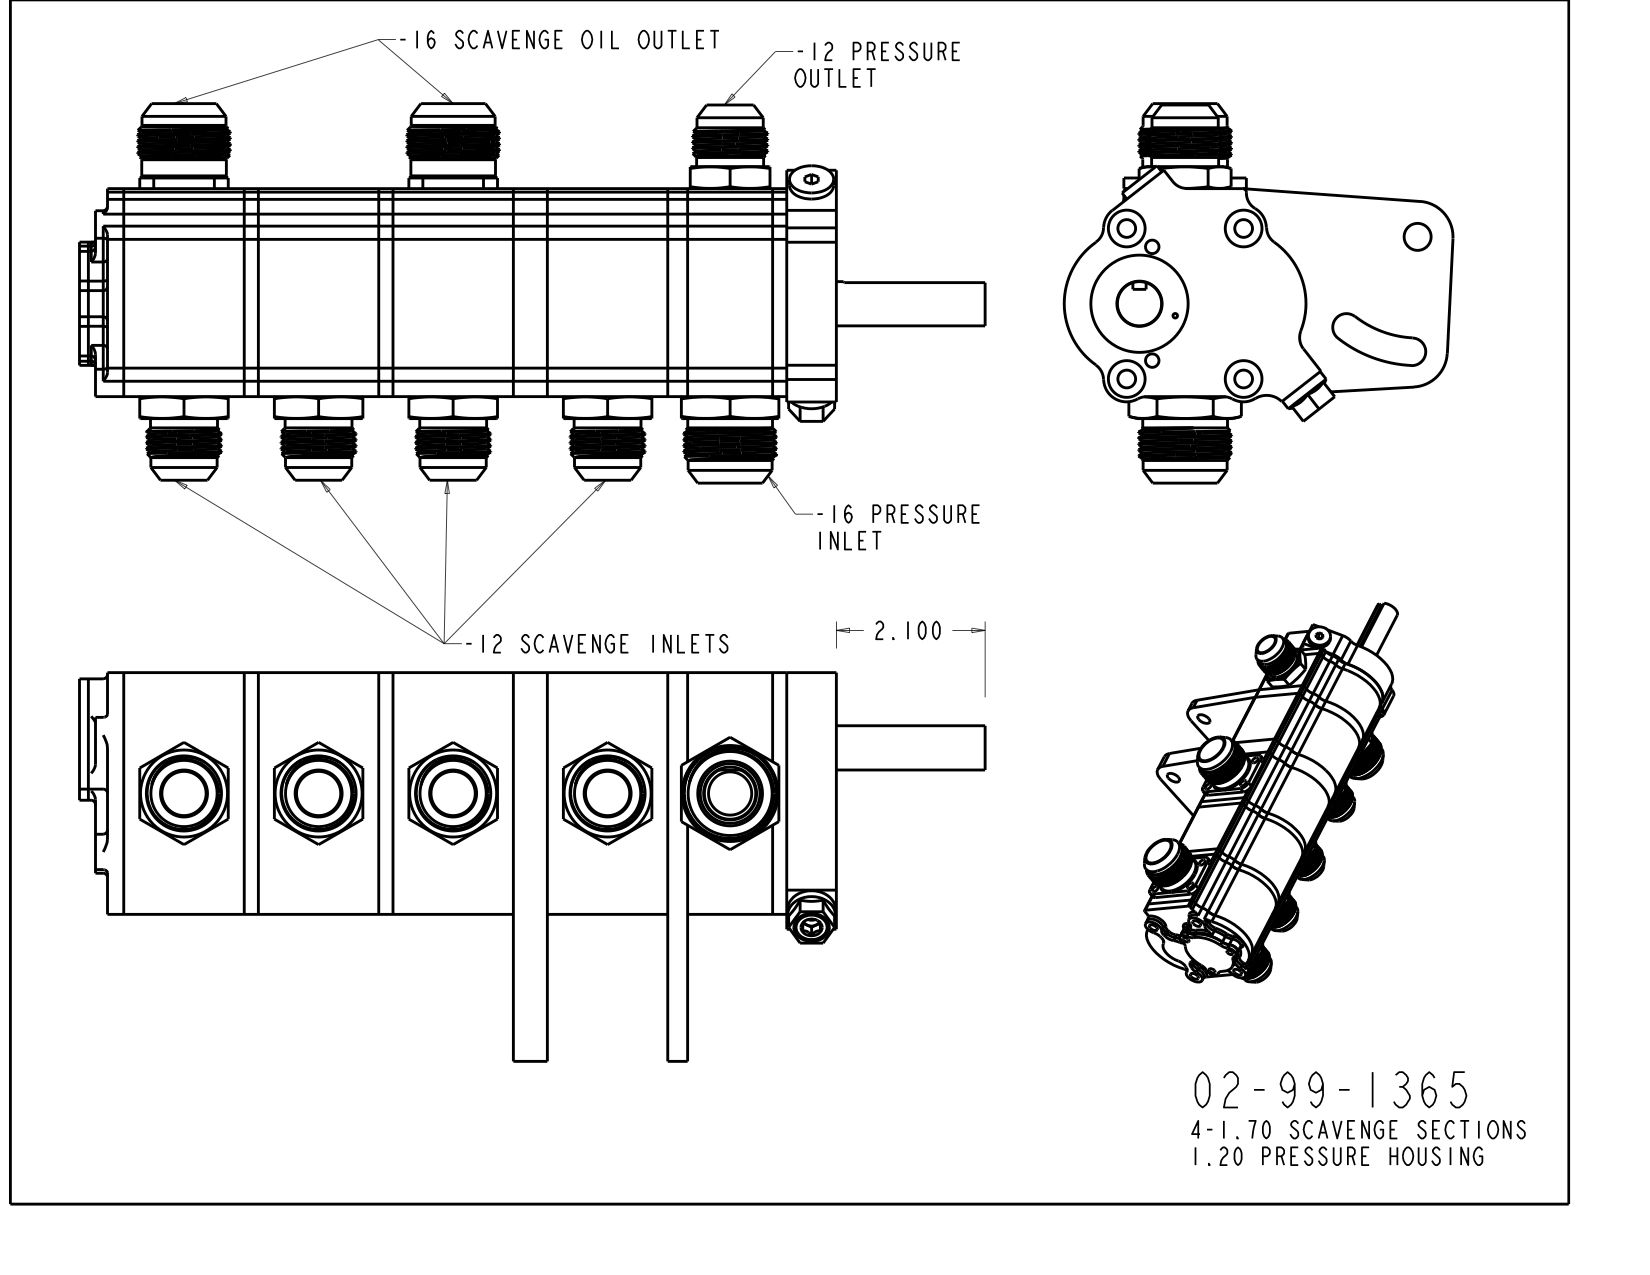 My 8620 Gm Ignition Switches Started With 2003 Saturn Ion Worldnewscom Wiring Diagram